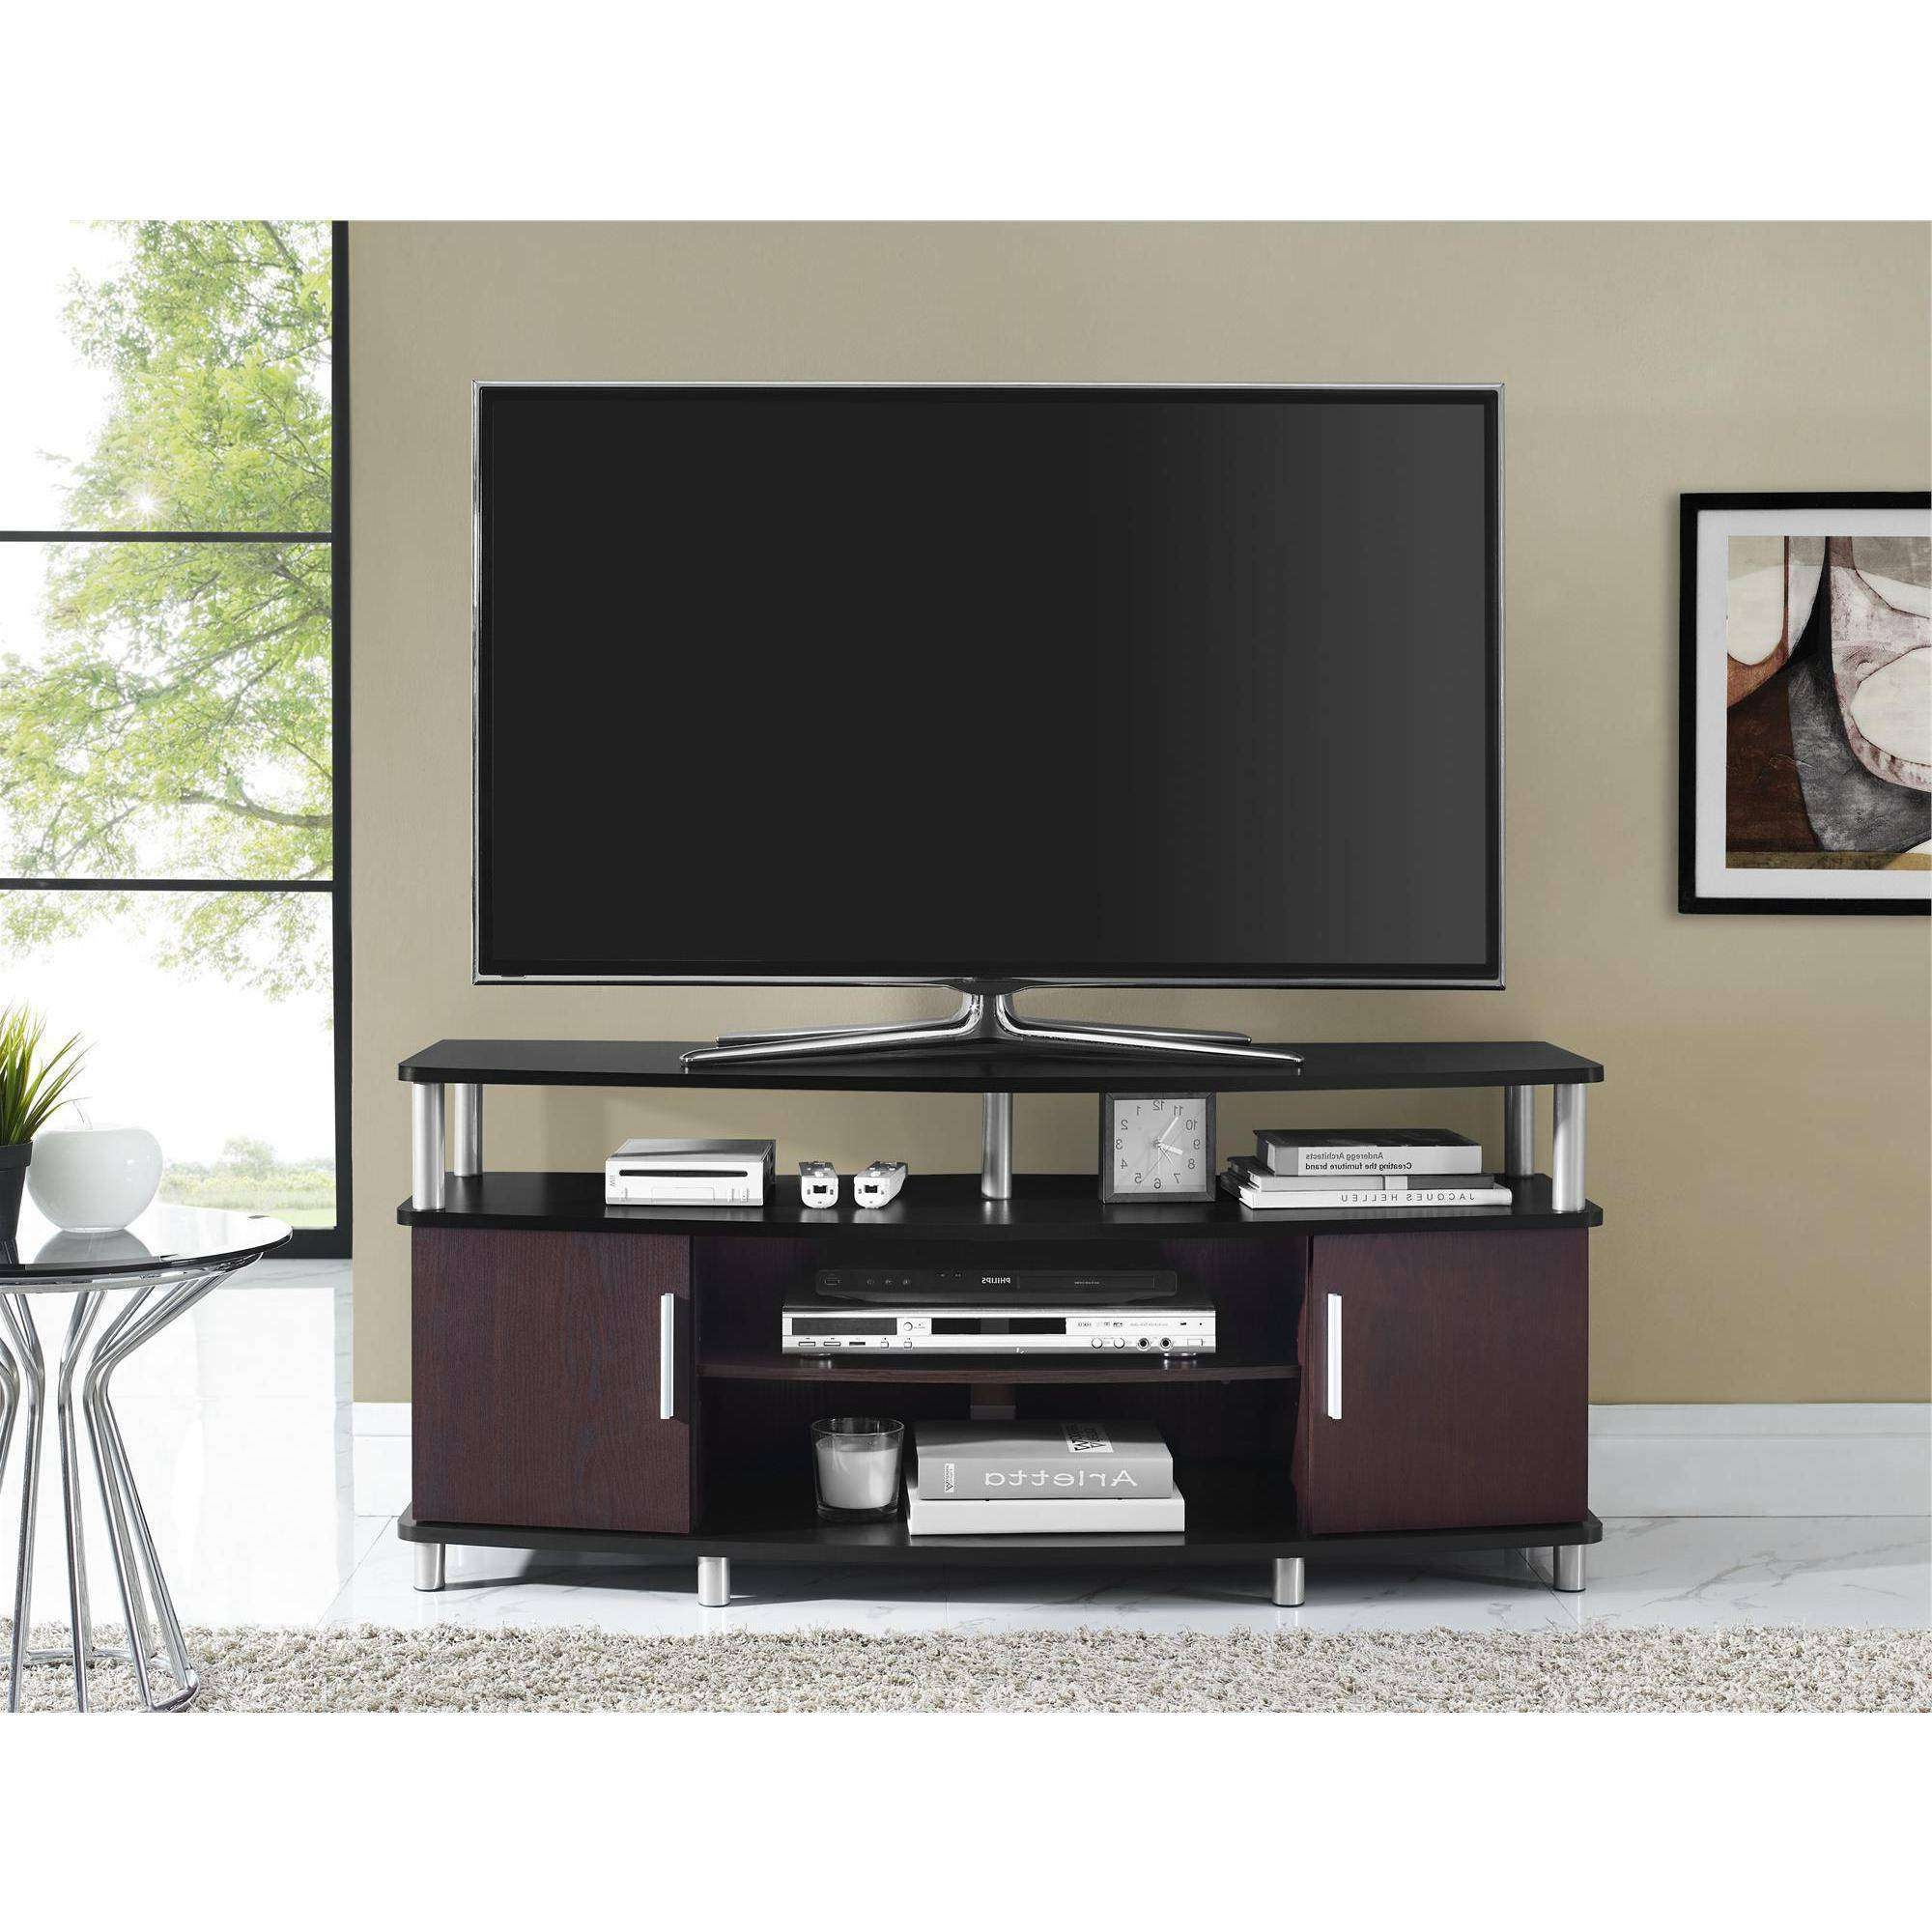 Flat Screen Tv Stands With Mount Furnitures Modern For Inch Throughout Modern Tv Stands For 60 Inch Tvs (View 4 of 15)